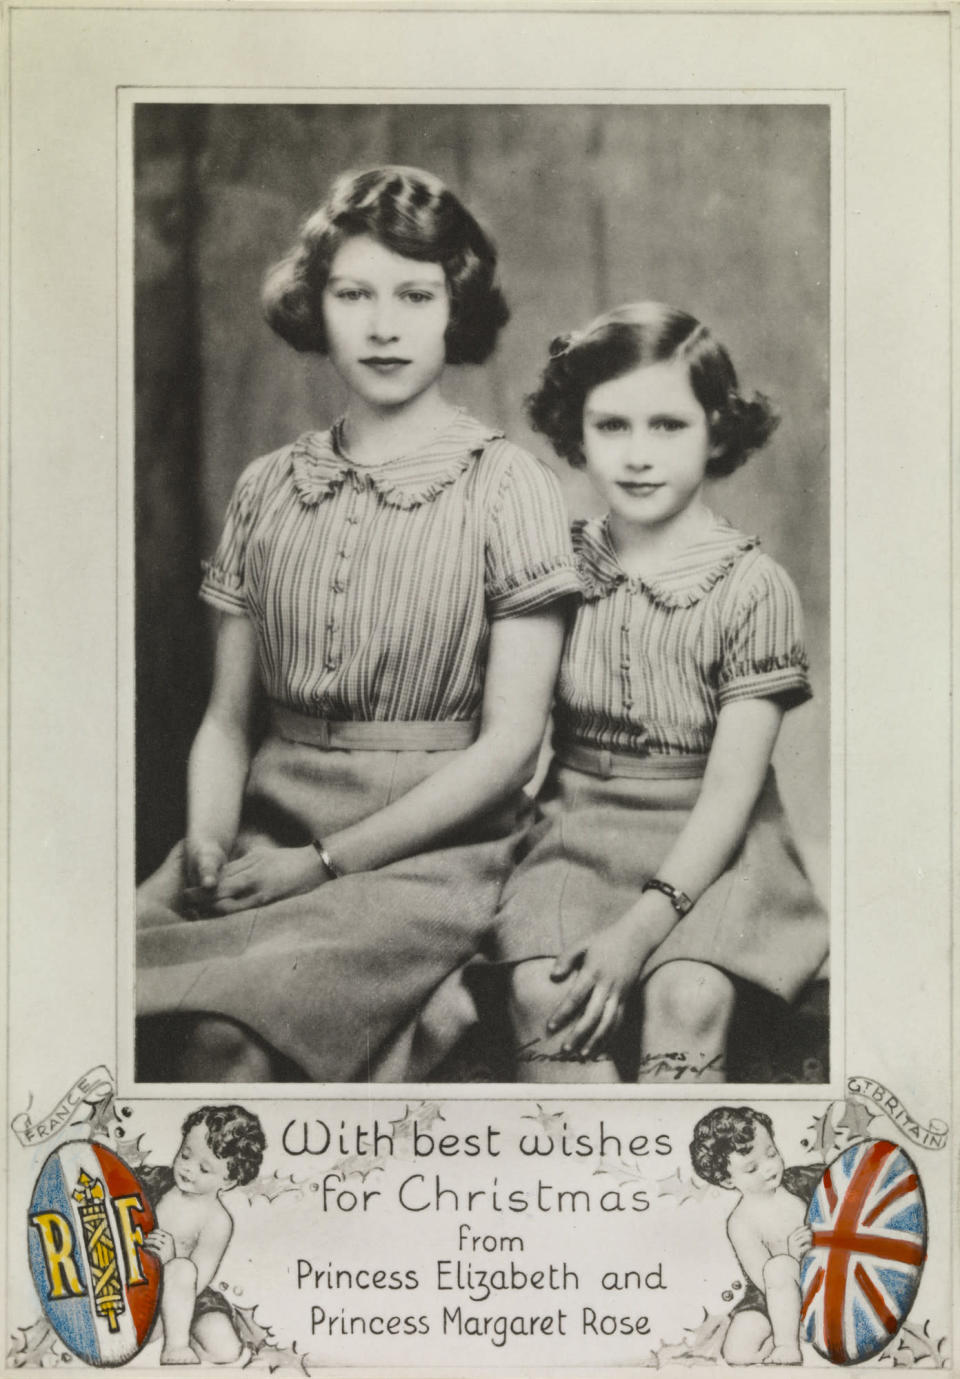 Portrait photograph of Princess Elizabeth and Princess Margaret as a Christmas card, 1939 (Royal Collection Trust / © Her Majesty Queen Elizabeth II 2018)